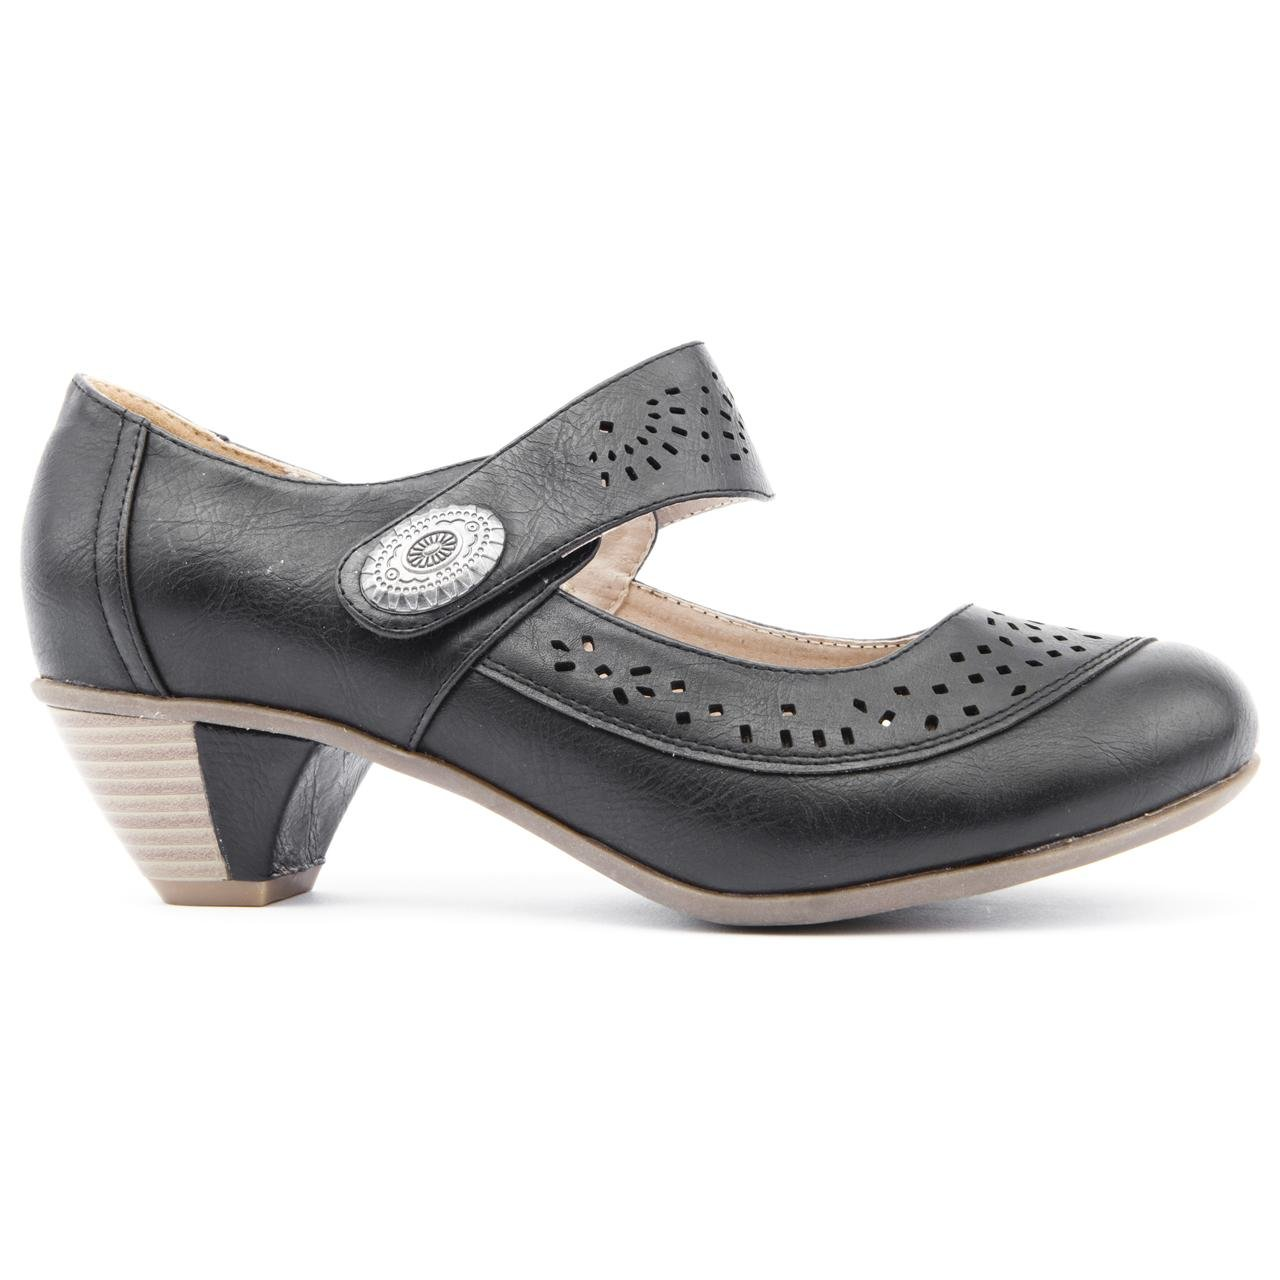 c864711557a4 Ladies Caravelle Extra Wide Fit Martina Black Low Heel Shoes Size 8   Amazon.co.uk  Shoes   Bags